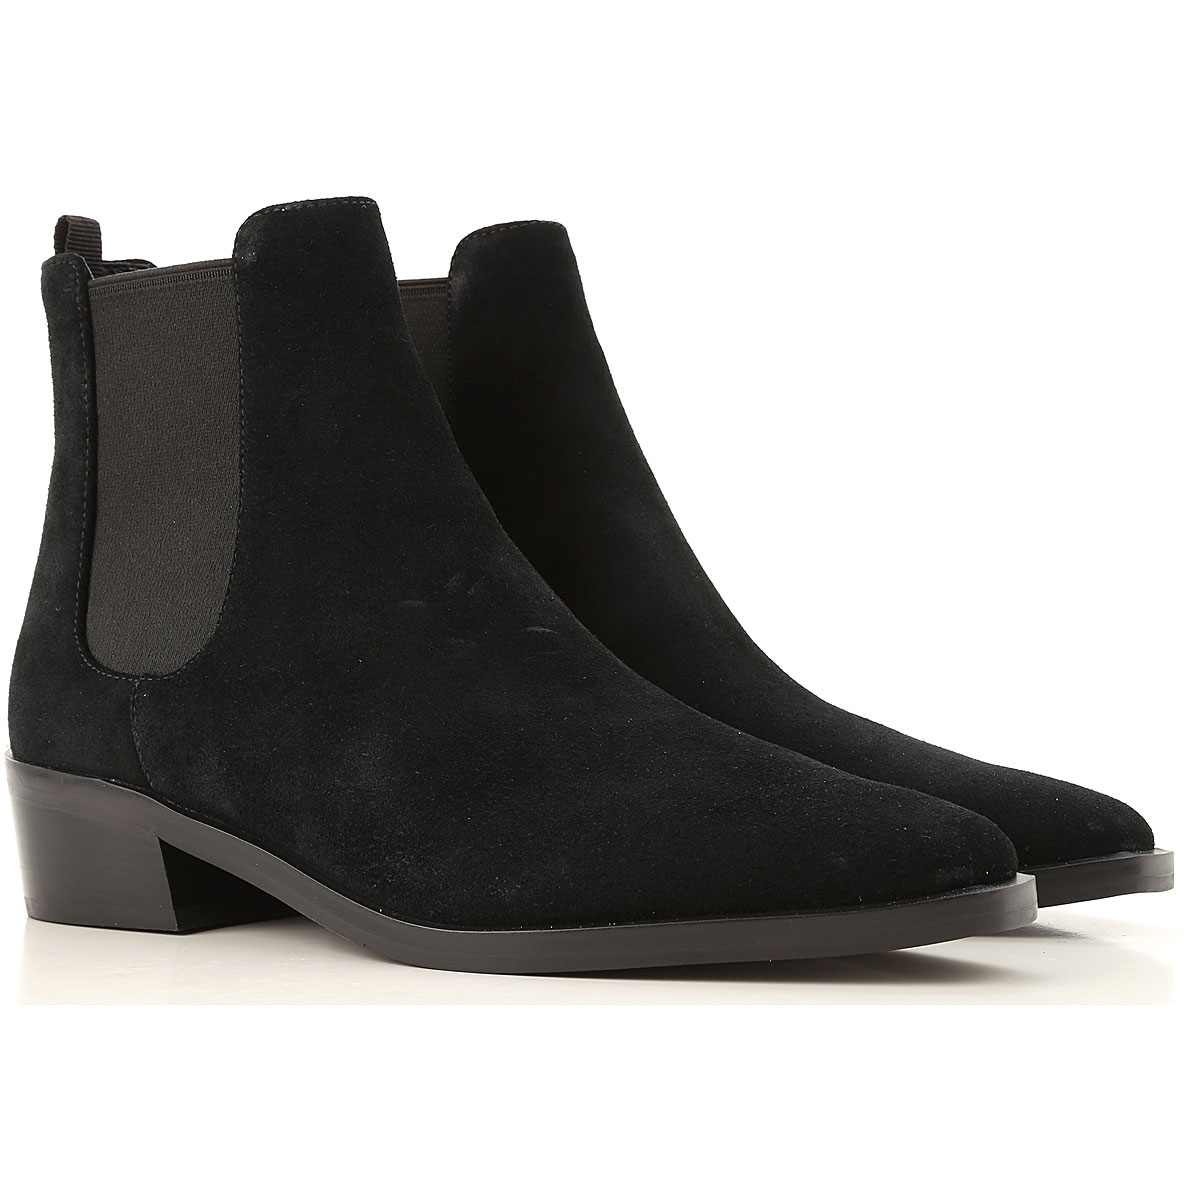 Michael Kors Boots for Women, Booties On Sale, Black, Suede leather, 2019, 6 6.5 7 8 8.5 9 9.5